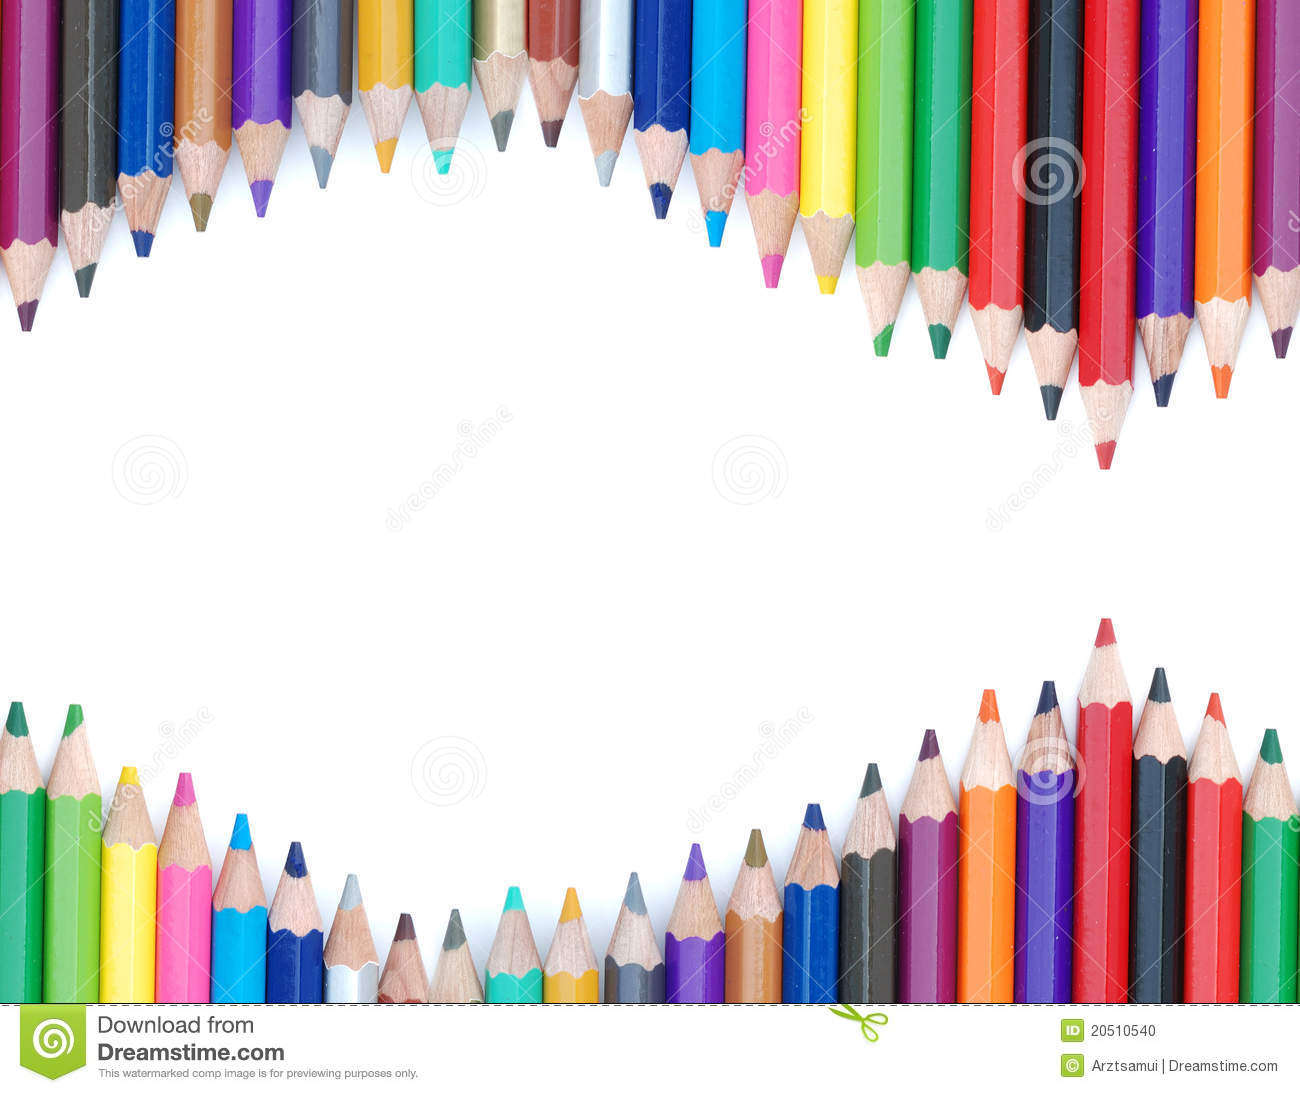 Pencil Color Background Stock Photo - Image: 20510540